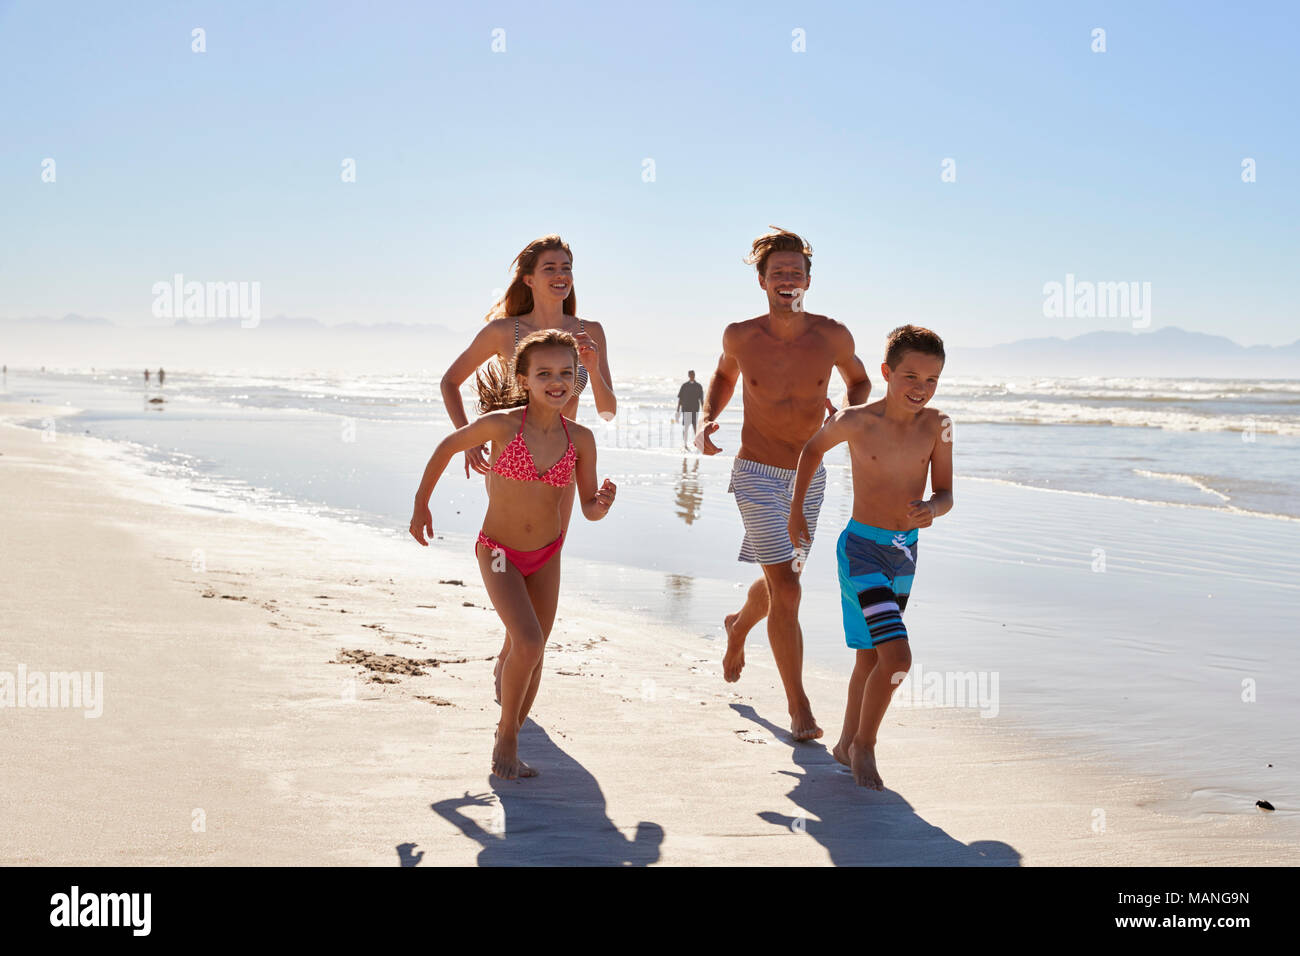 Family On Summer Vacation Running Along Beach Together Stock Photo